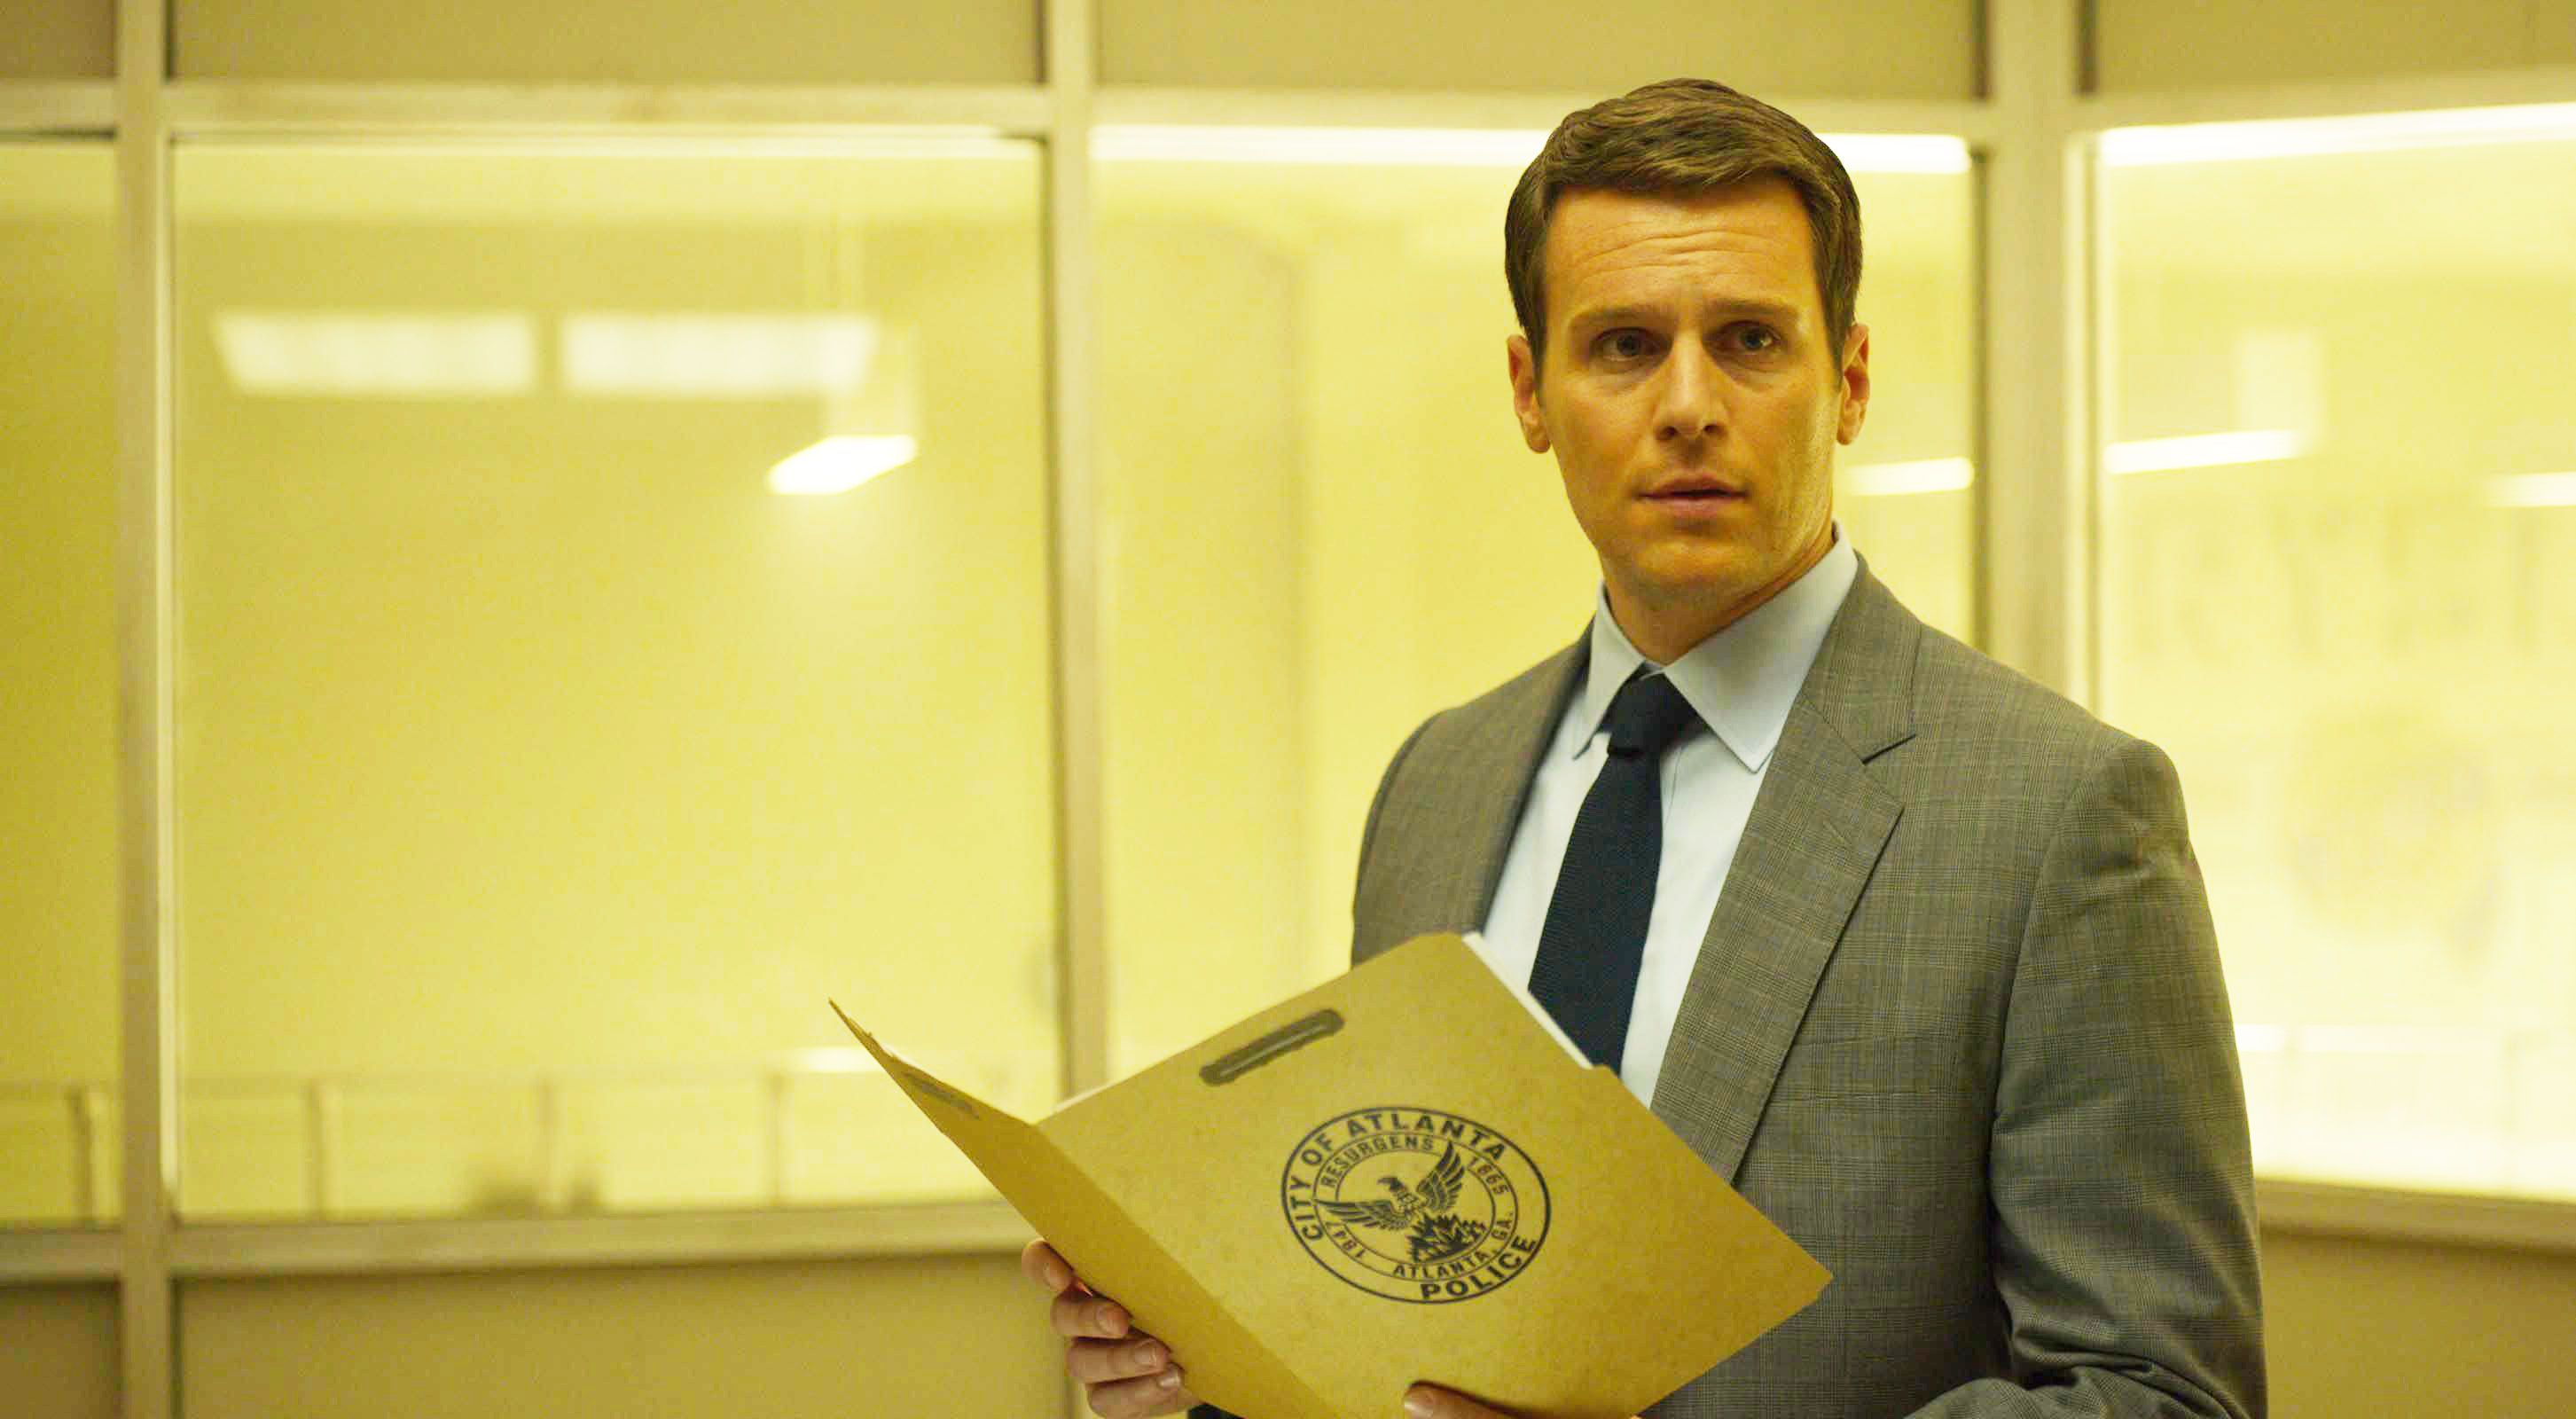 Mindhunter Season 3 Delay Reasons Revealed Why did Netflix Terminated the Cast Contracts